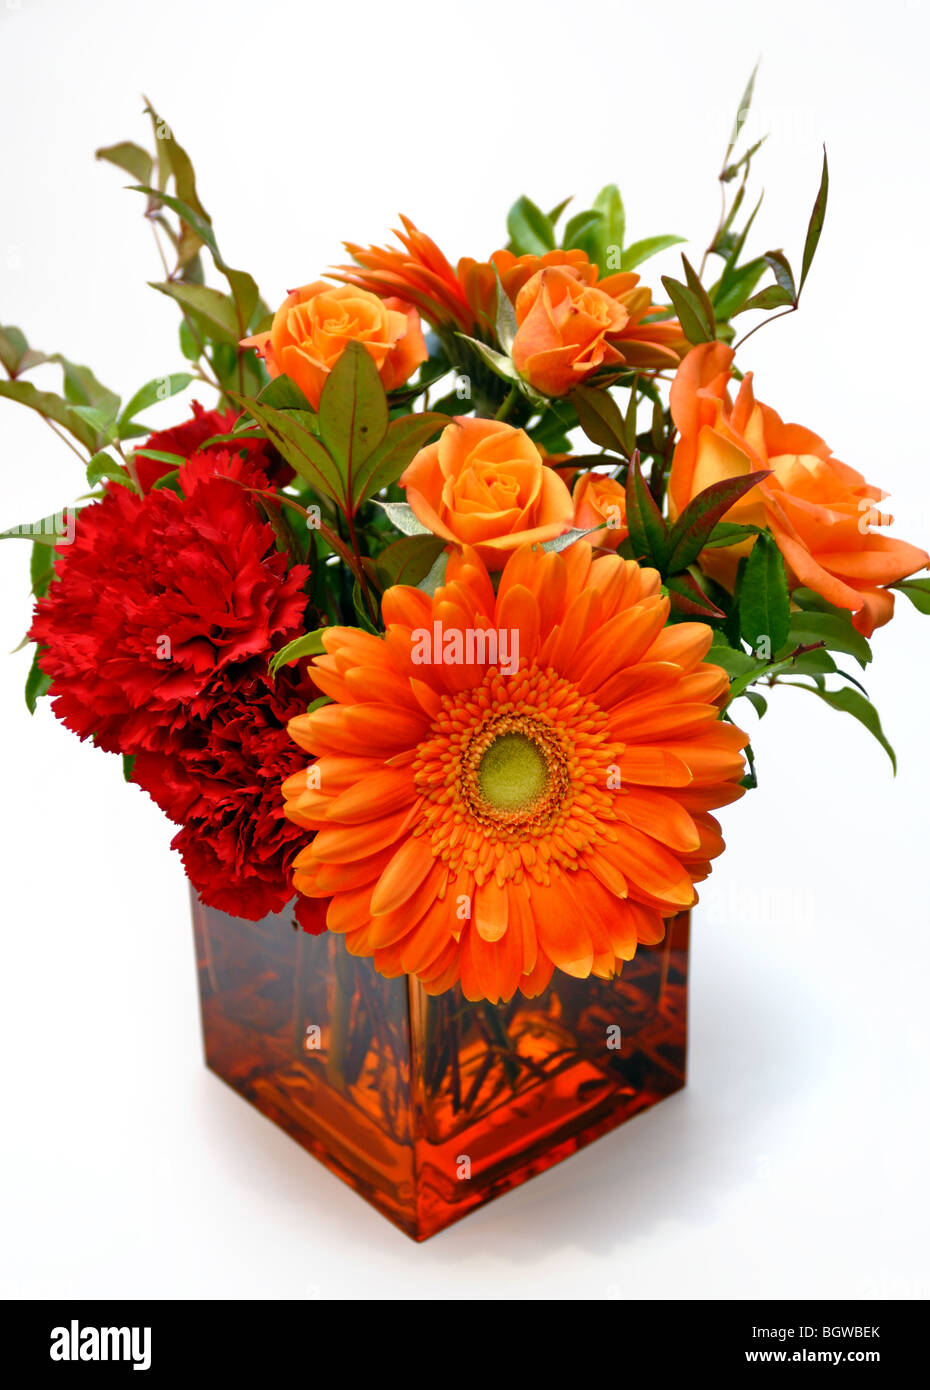 A colorful orange flower arrangement containing daisies and roses a colorful orange flower arrangement containing daisies and roses in a square glass vase izmirmasajfo